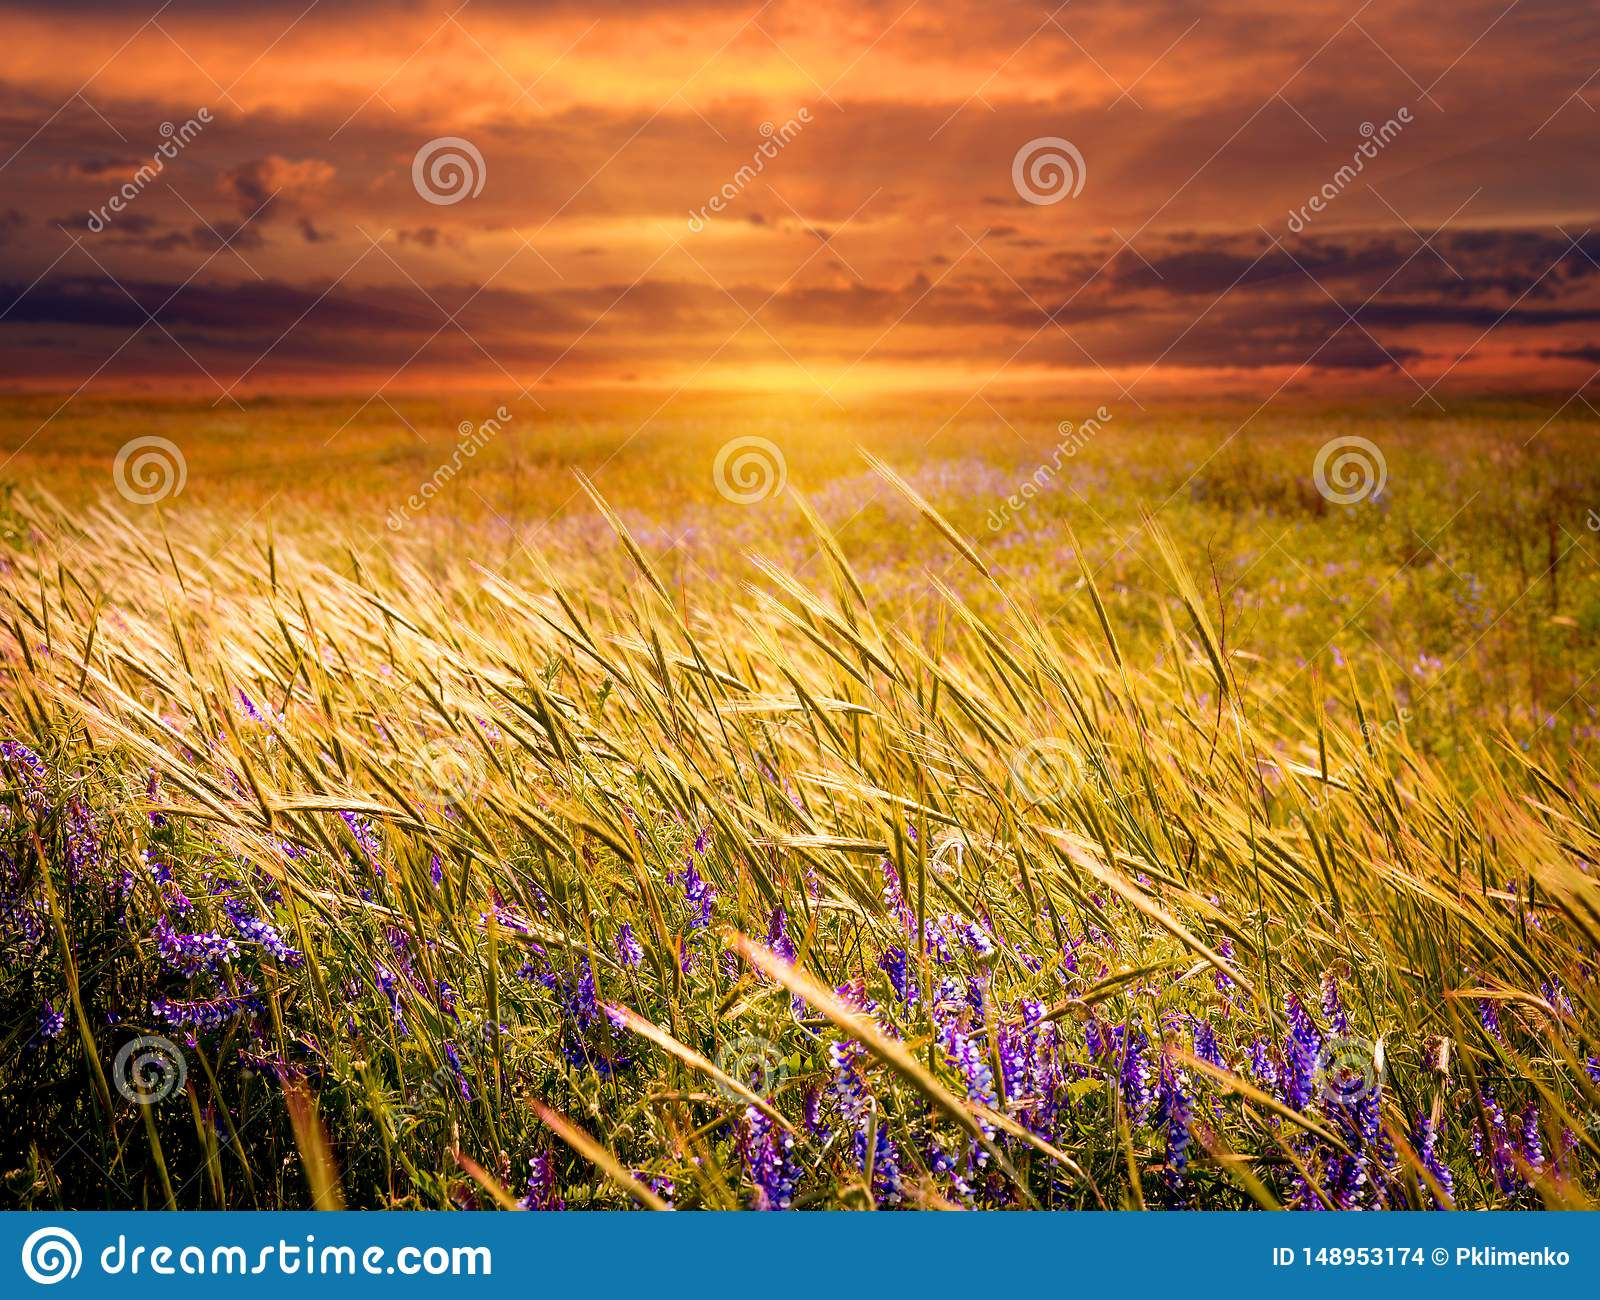 Meadow on sunset background